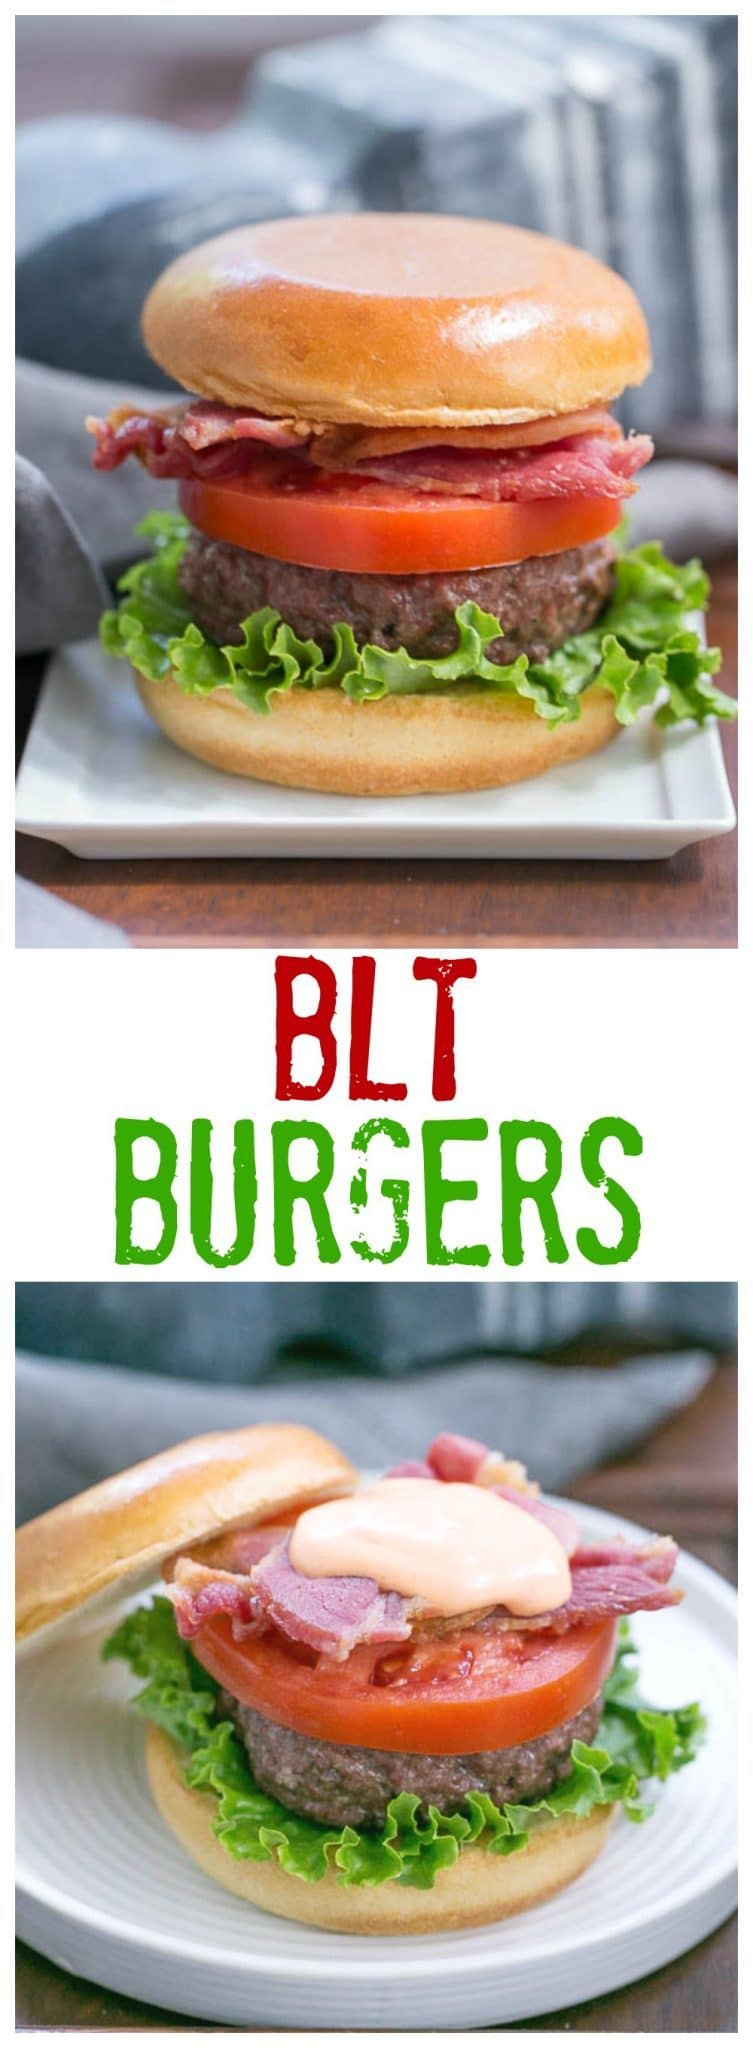 BLT Burgers | With a double dose of bacon and a spicy Sriracha mayo, these burgers are out of this world!